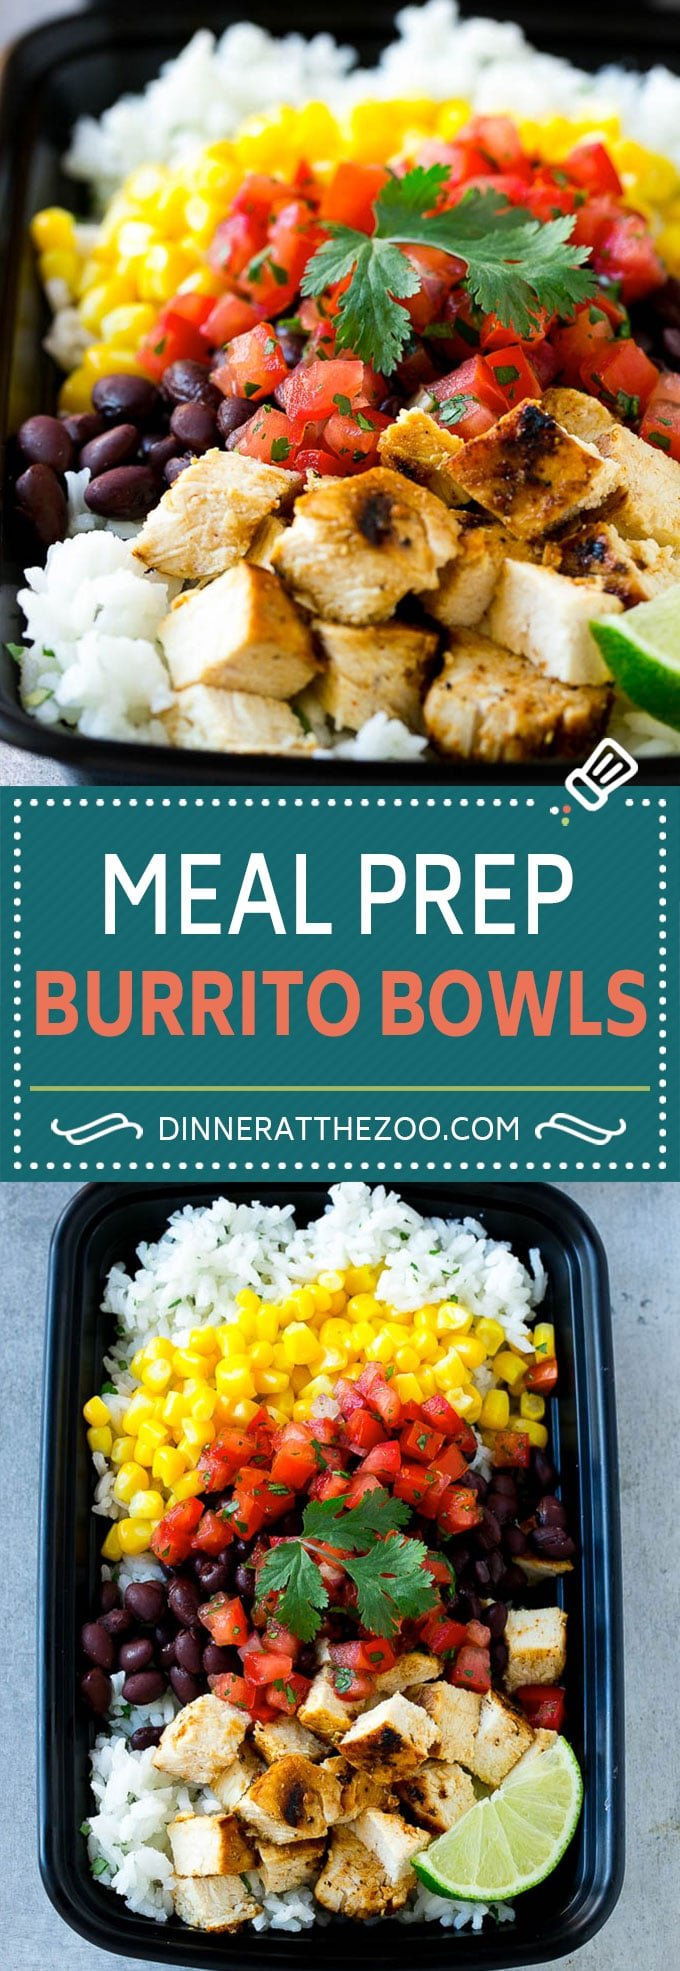 36 easy meal prep recipes dinner at the zoo meal prep burrito bowls chicken burrito bowls meal prep recipe burrito bowl recipe forumfinder